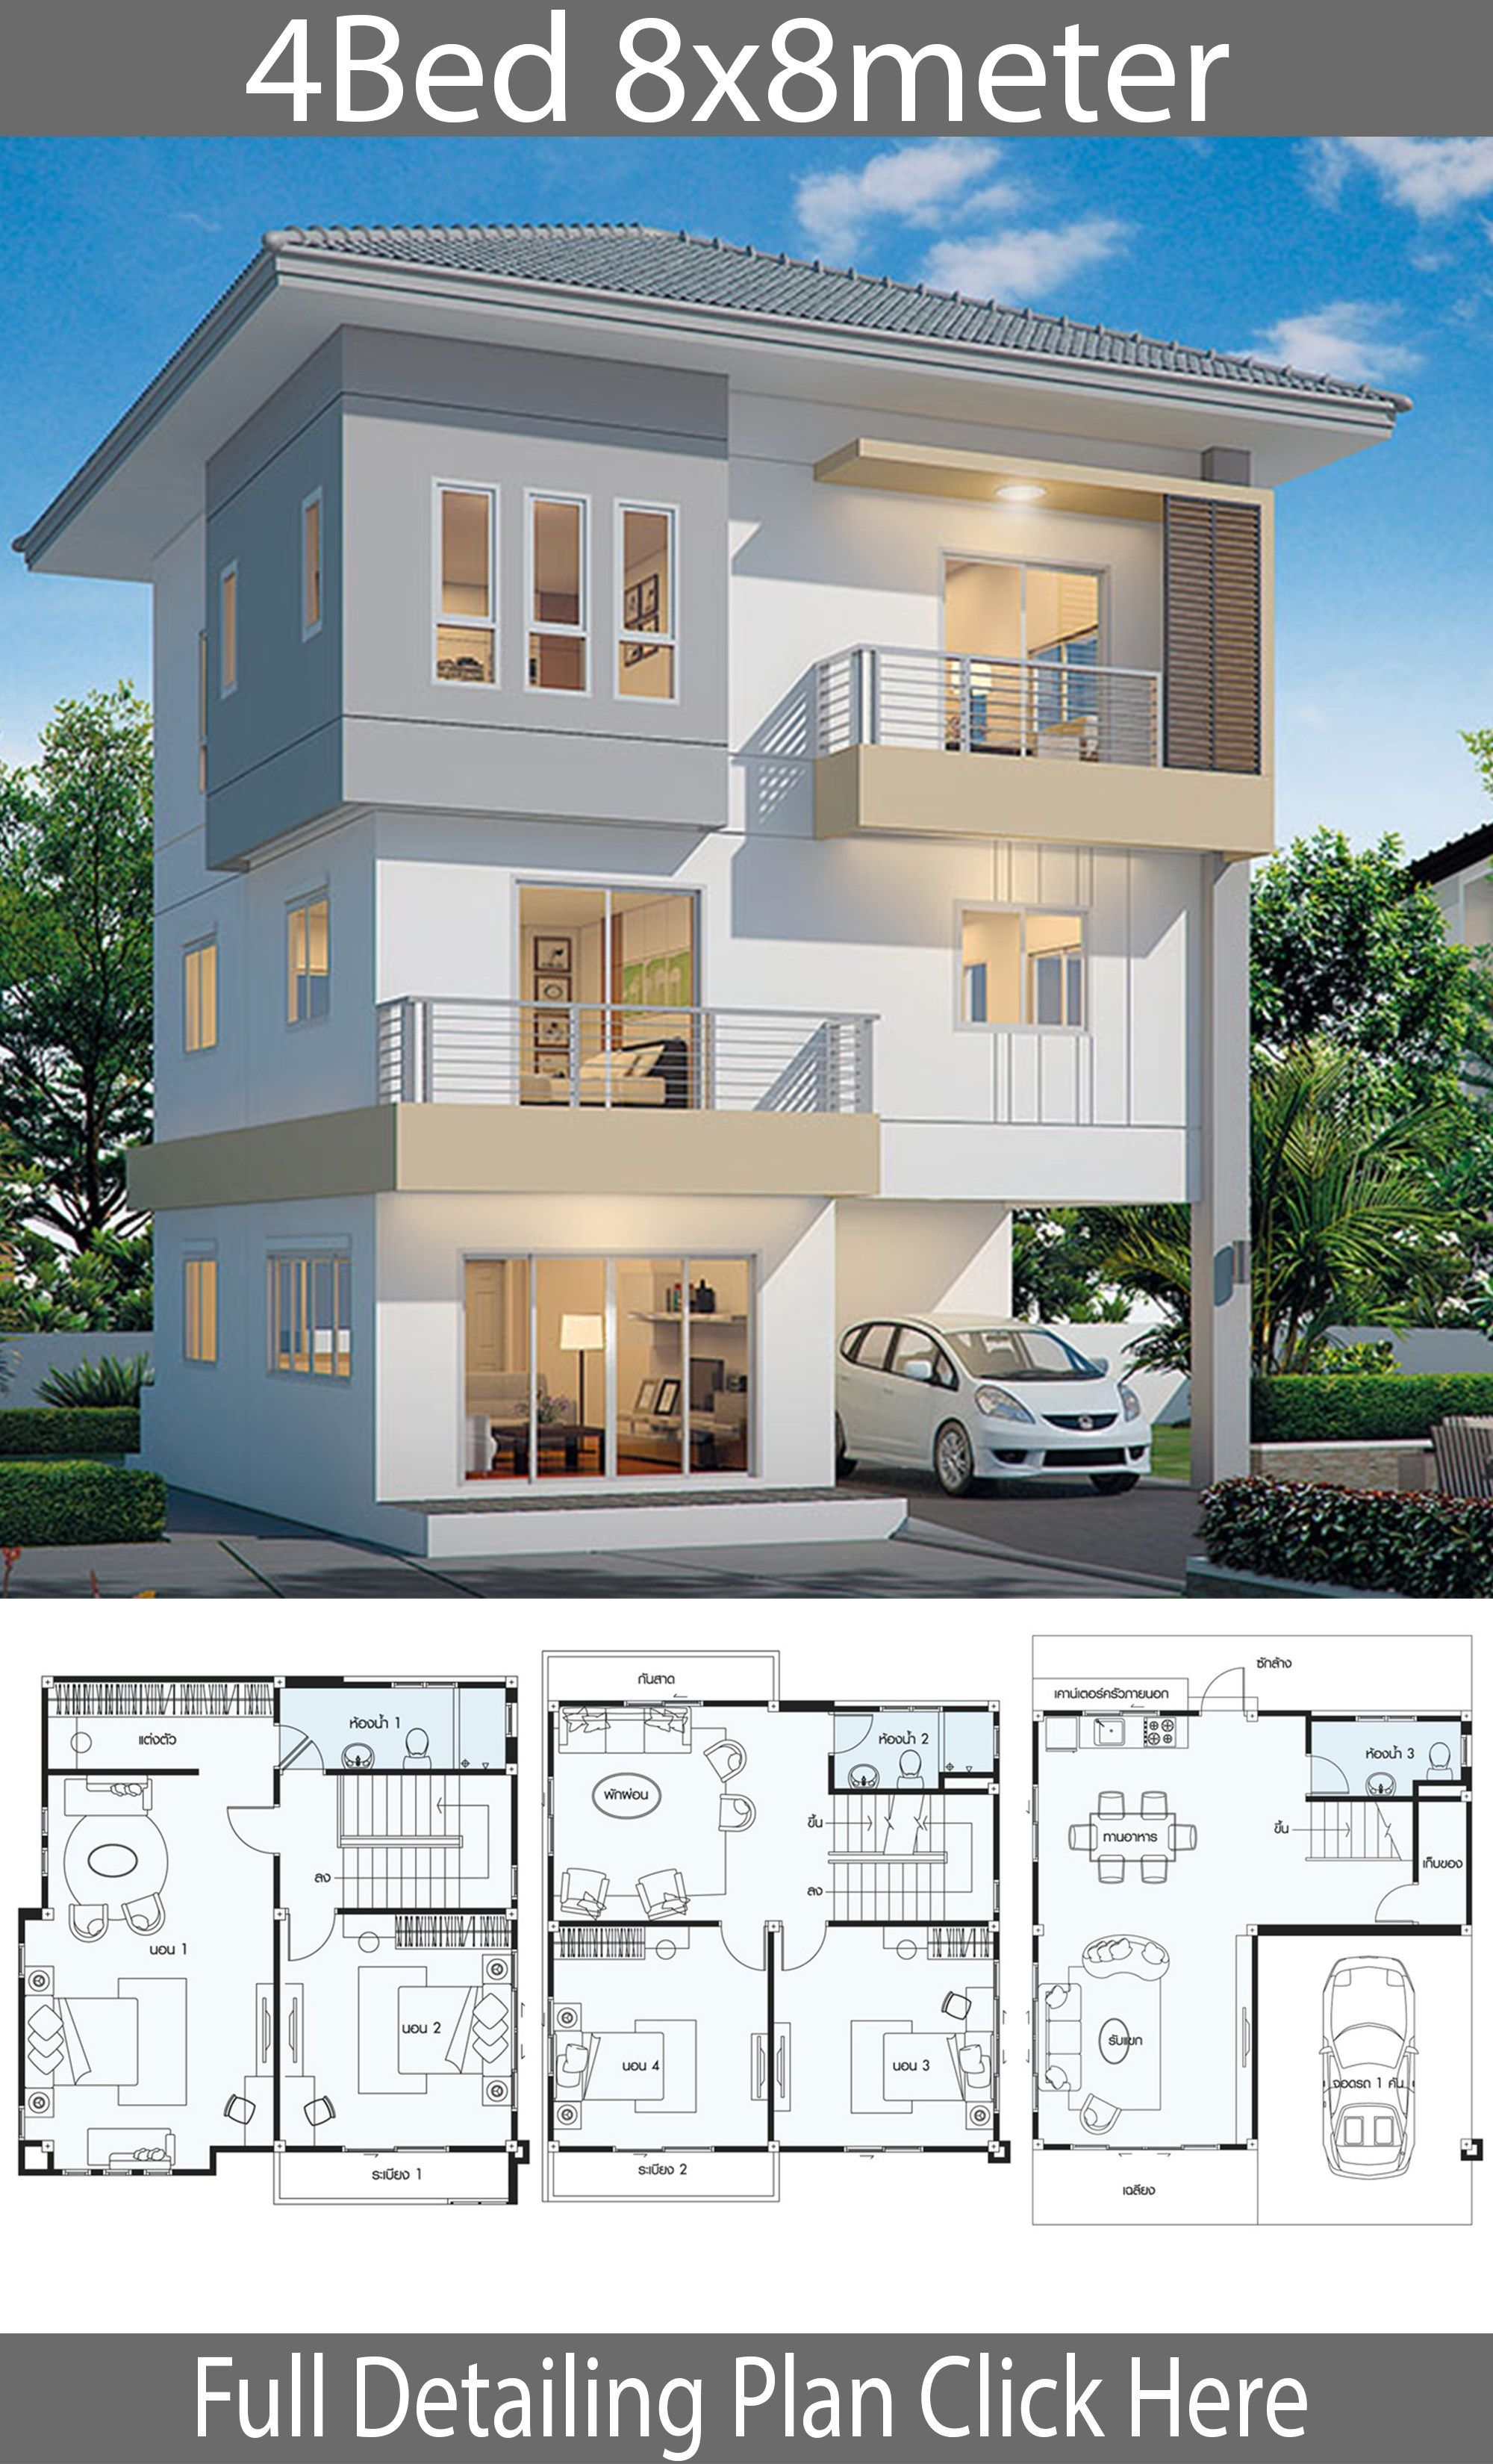 House Design Plan 8x8m With 4 Bedrooms Home Ideas 3 Storey House Design Duplex House Design Model House Plan